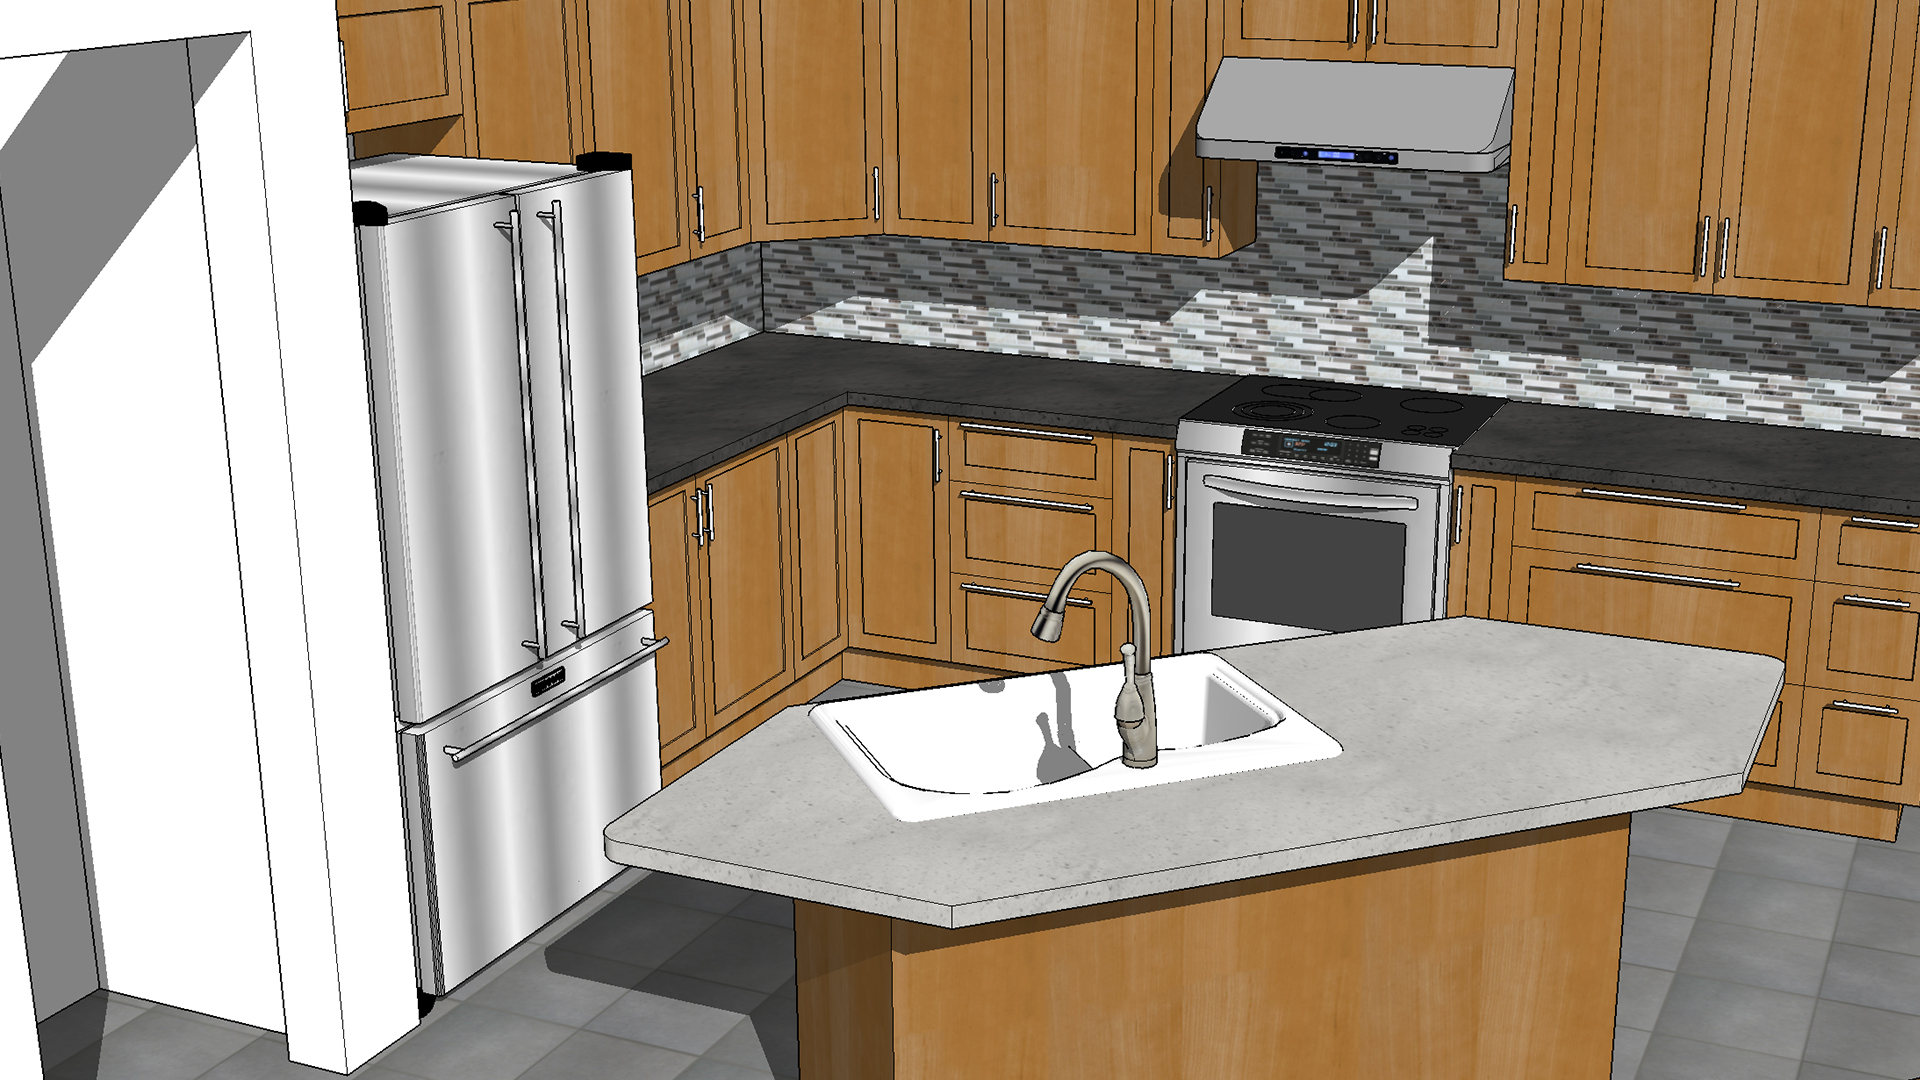 Kitchen Design Hd Wallpapers sketchup: kitchen design